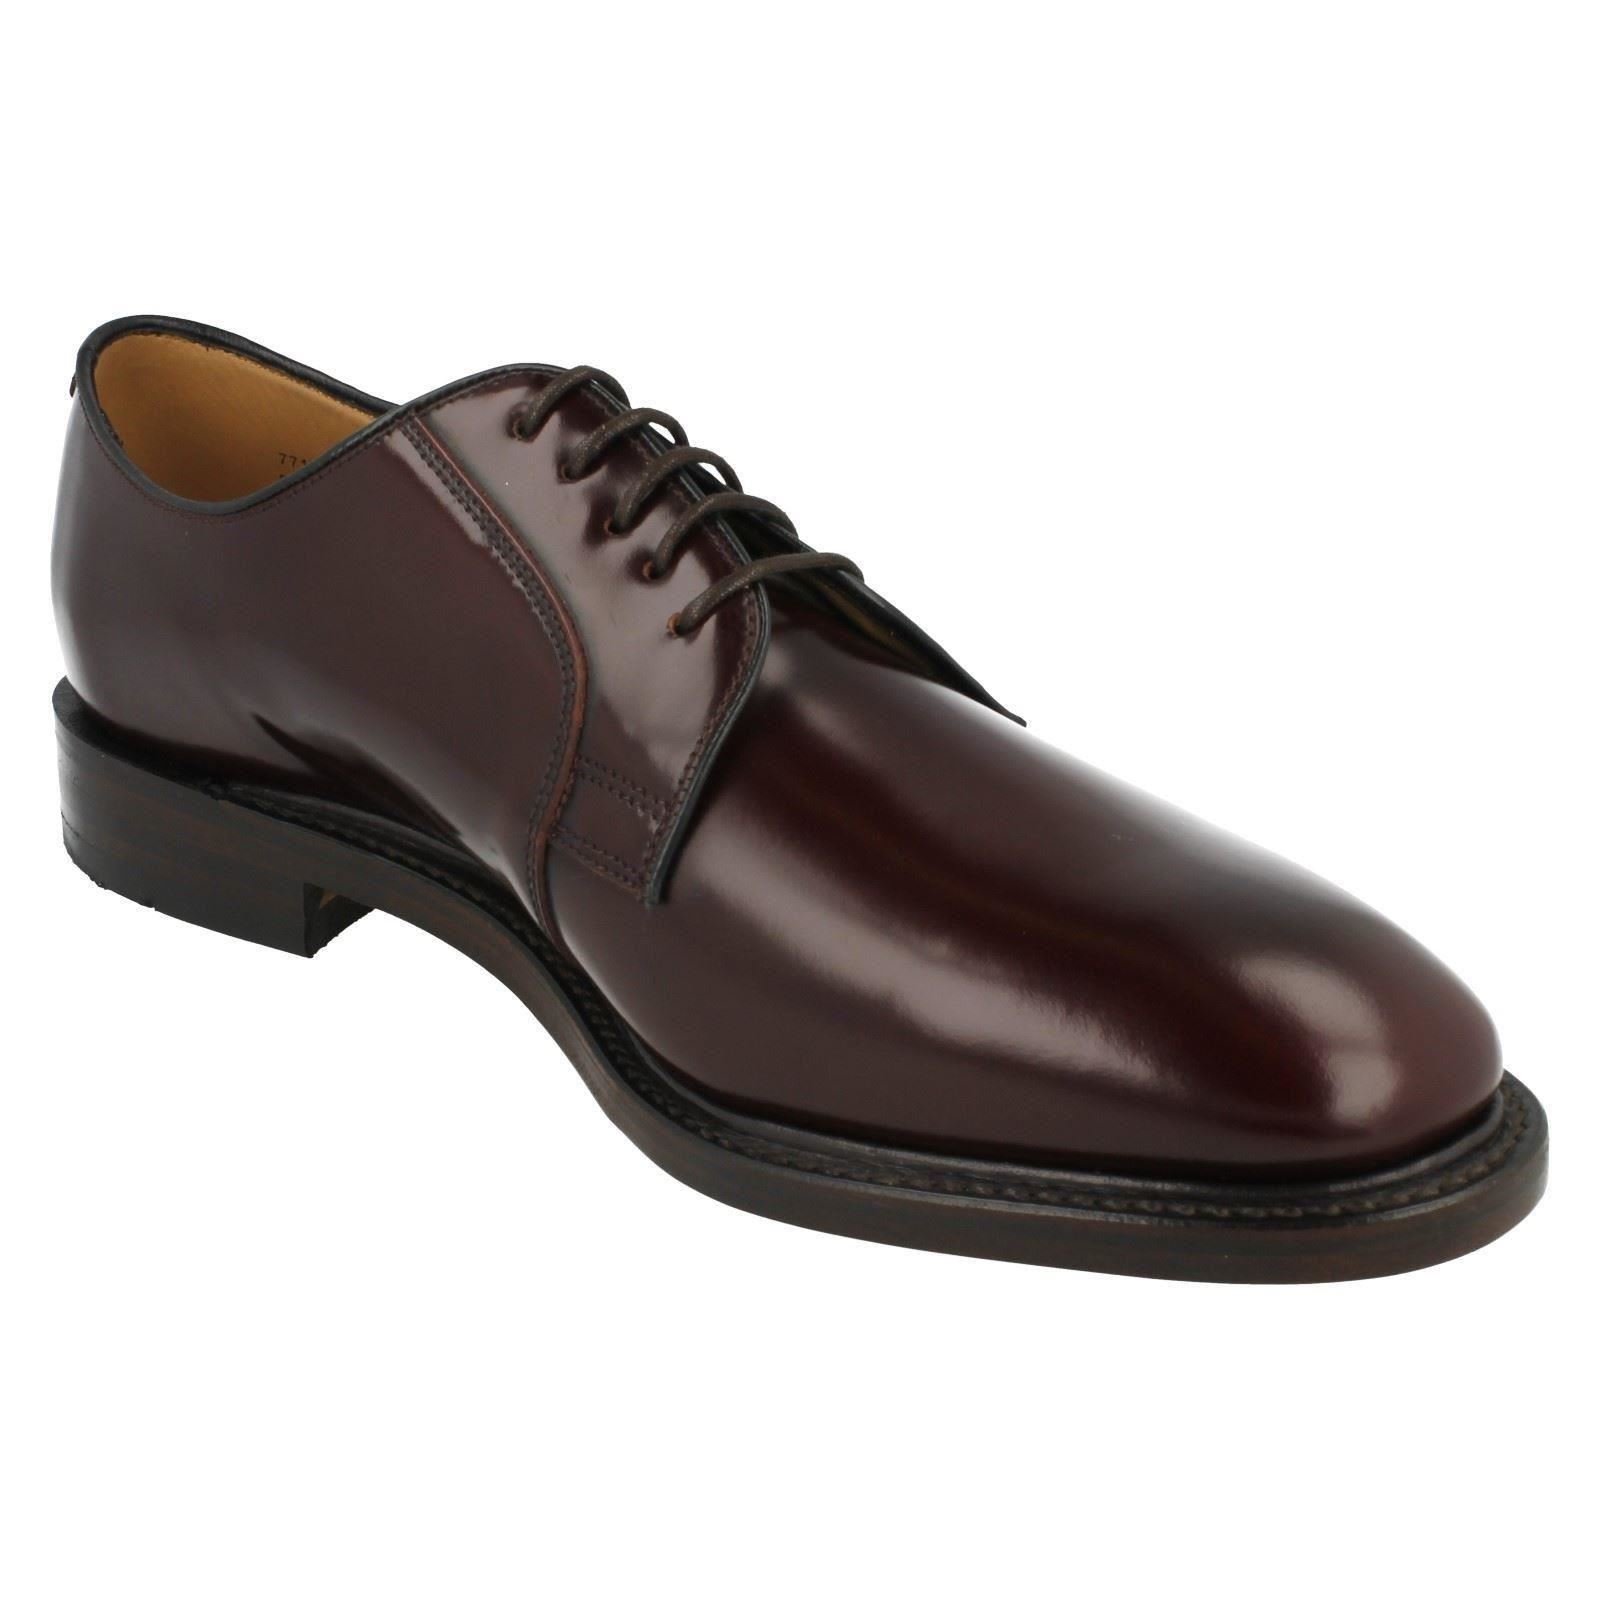 Uomo Loake Formal Formal Formal Leder Schuhes Fitting F Style - 771 df21bb